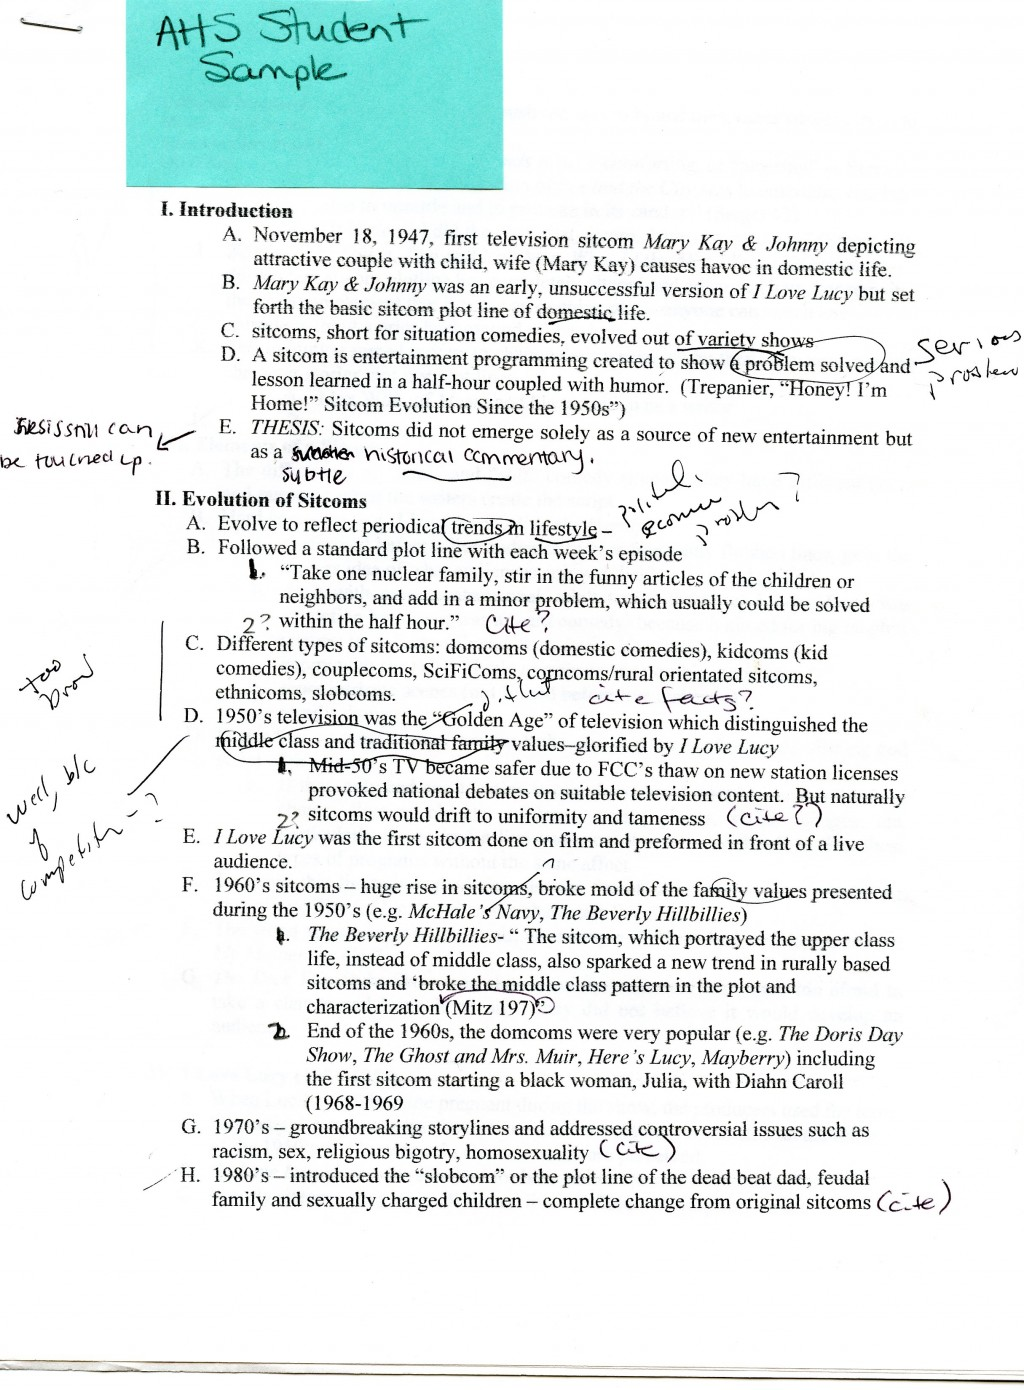 006 Smp Sample Outline 1 Thematic Essays Phenomenal Essay Examples For Us History Regents Global Large